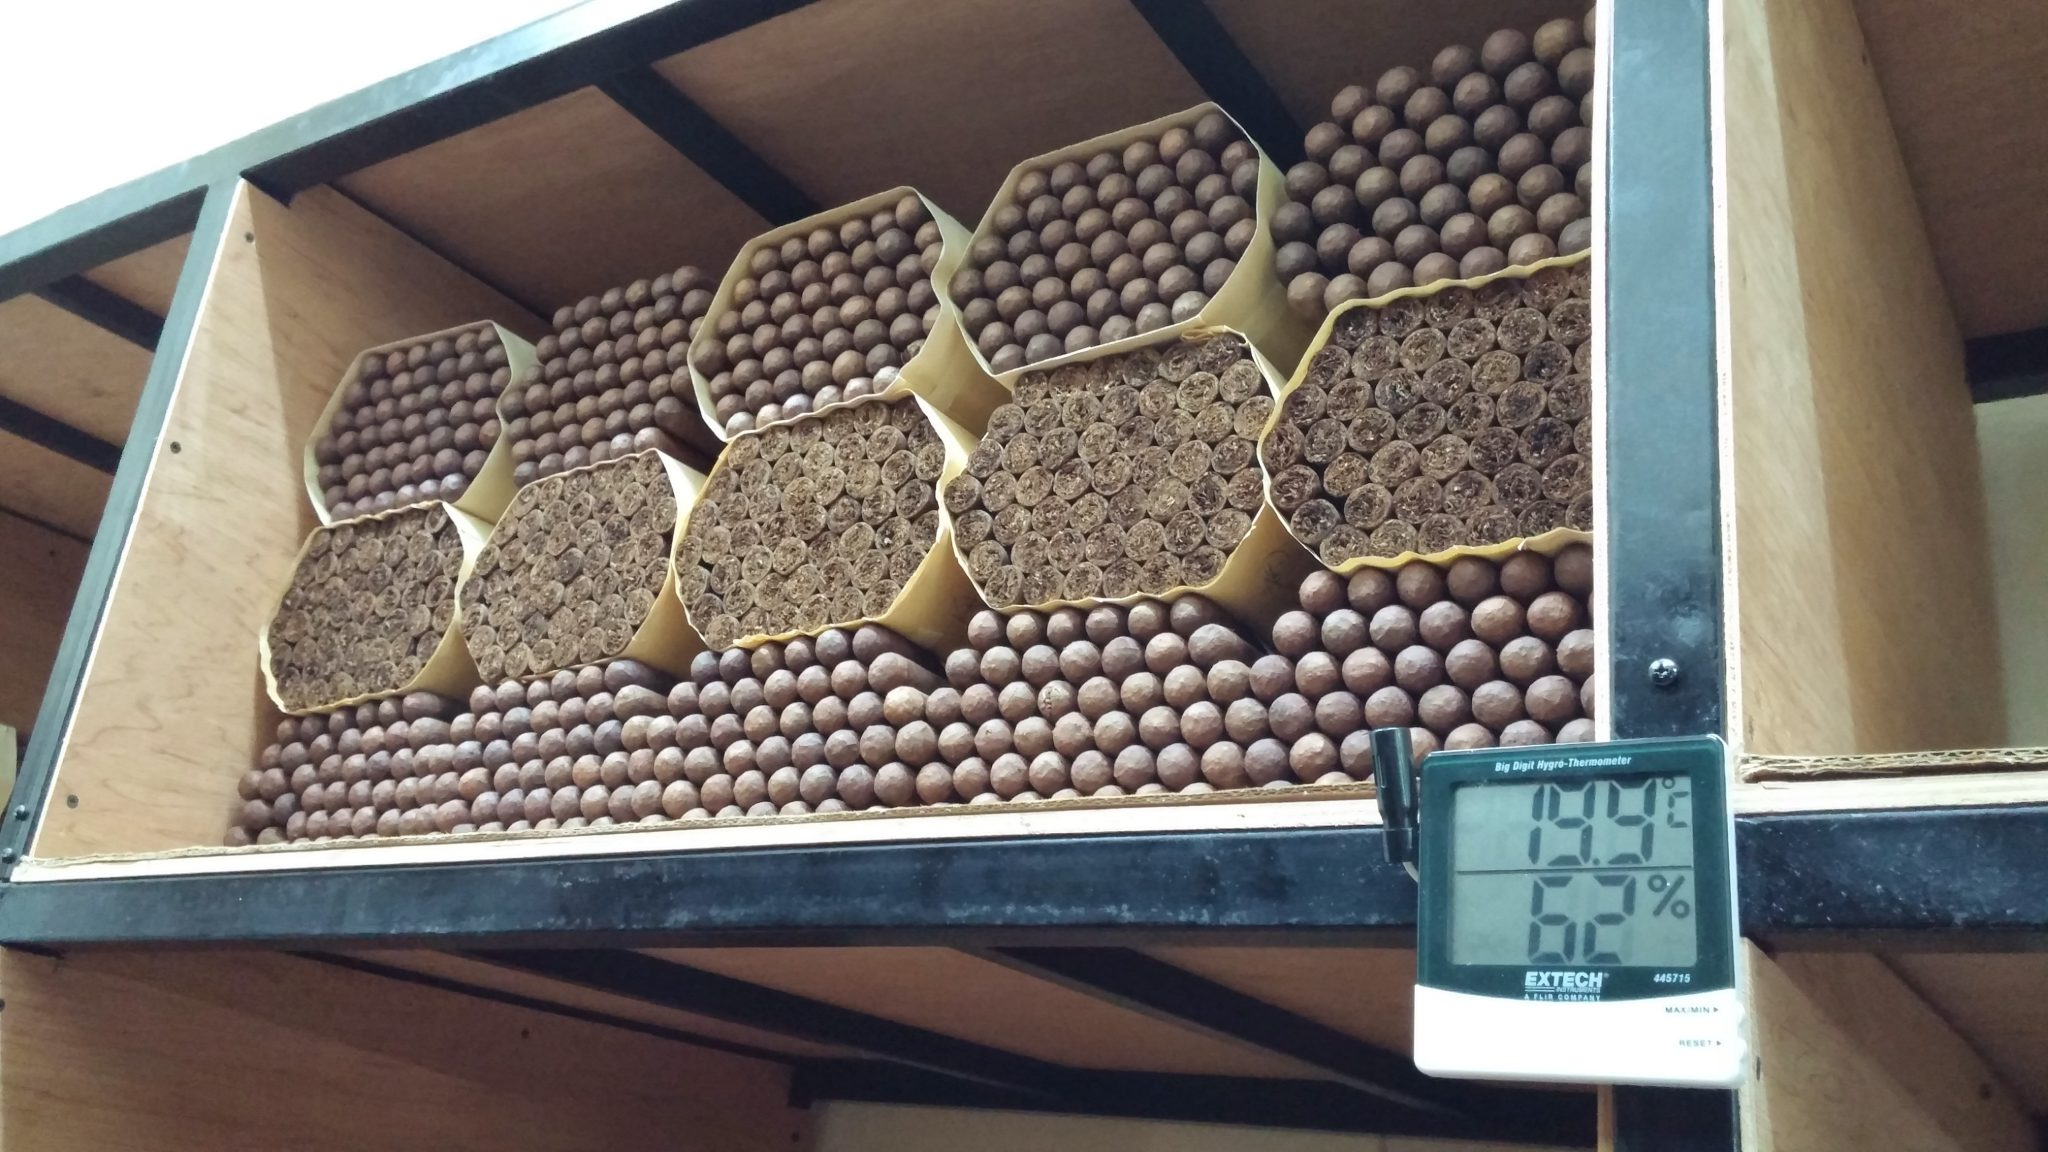 5 things about aging cigars - cigar factory aging room with cigars